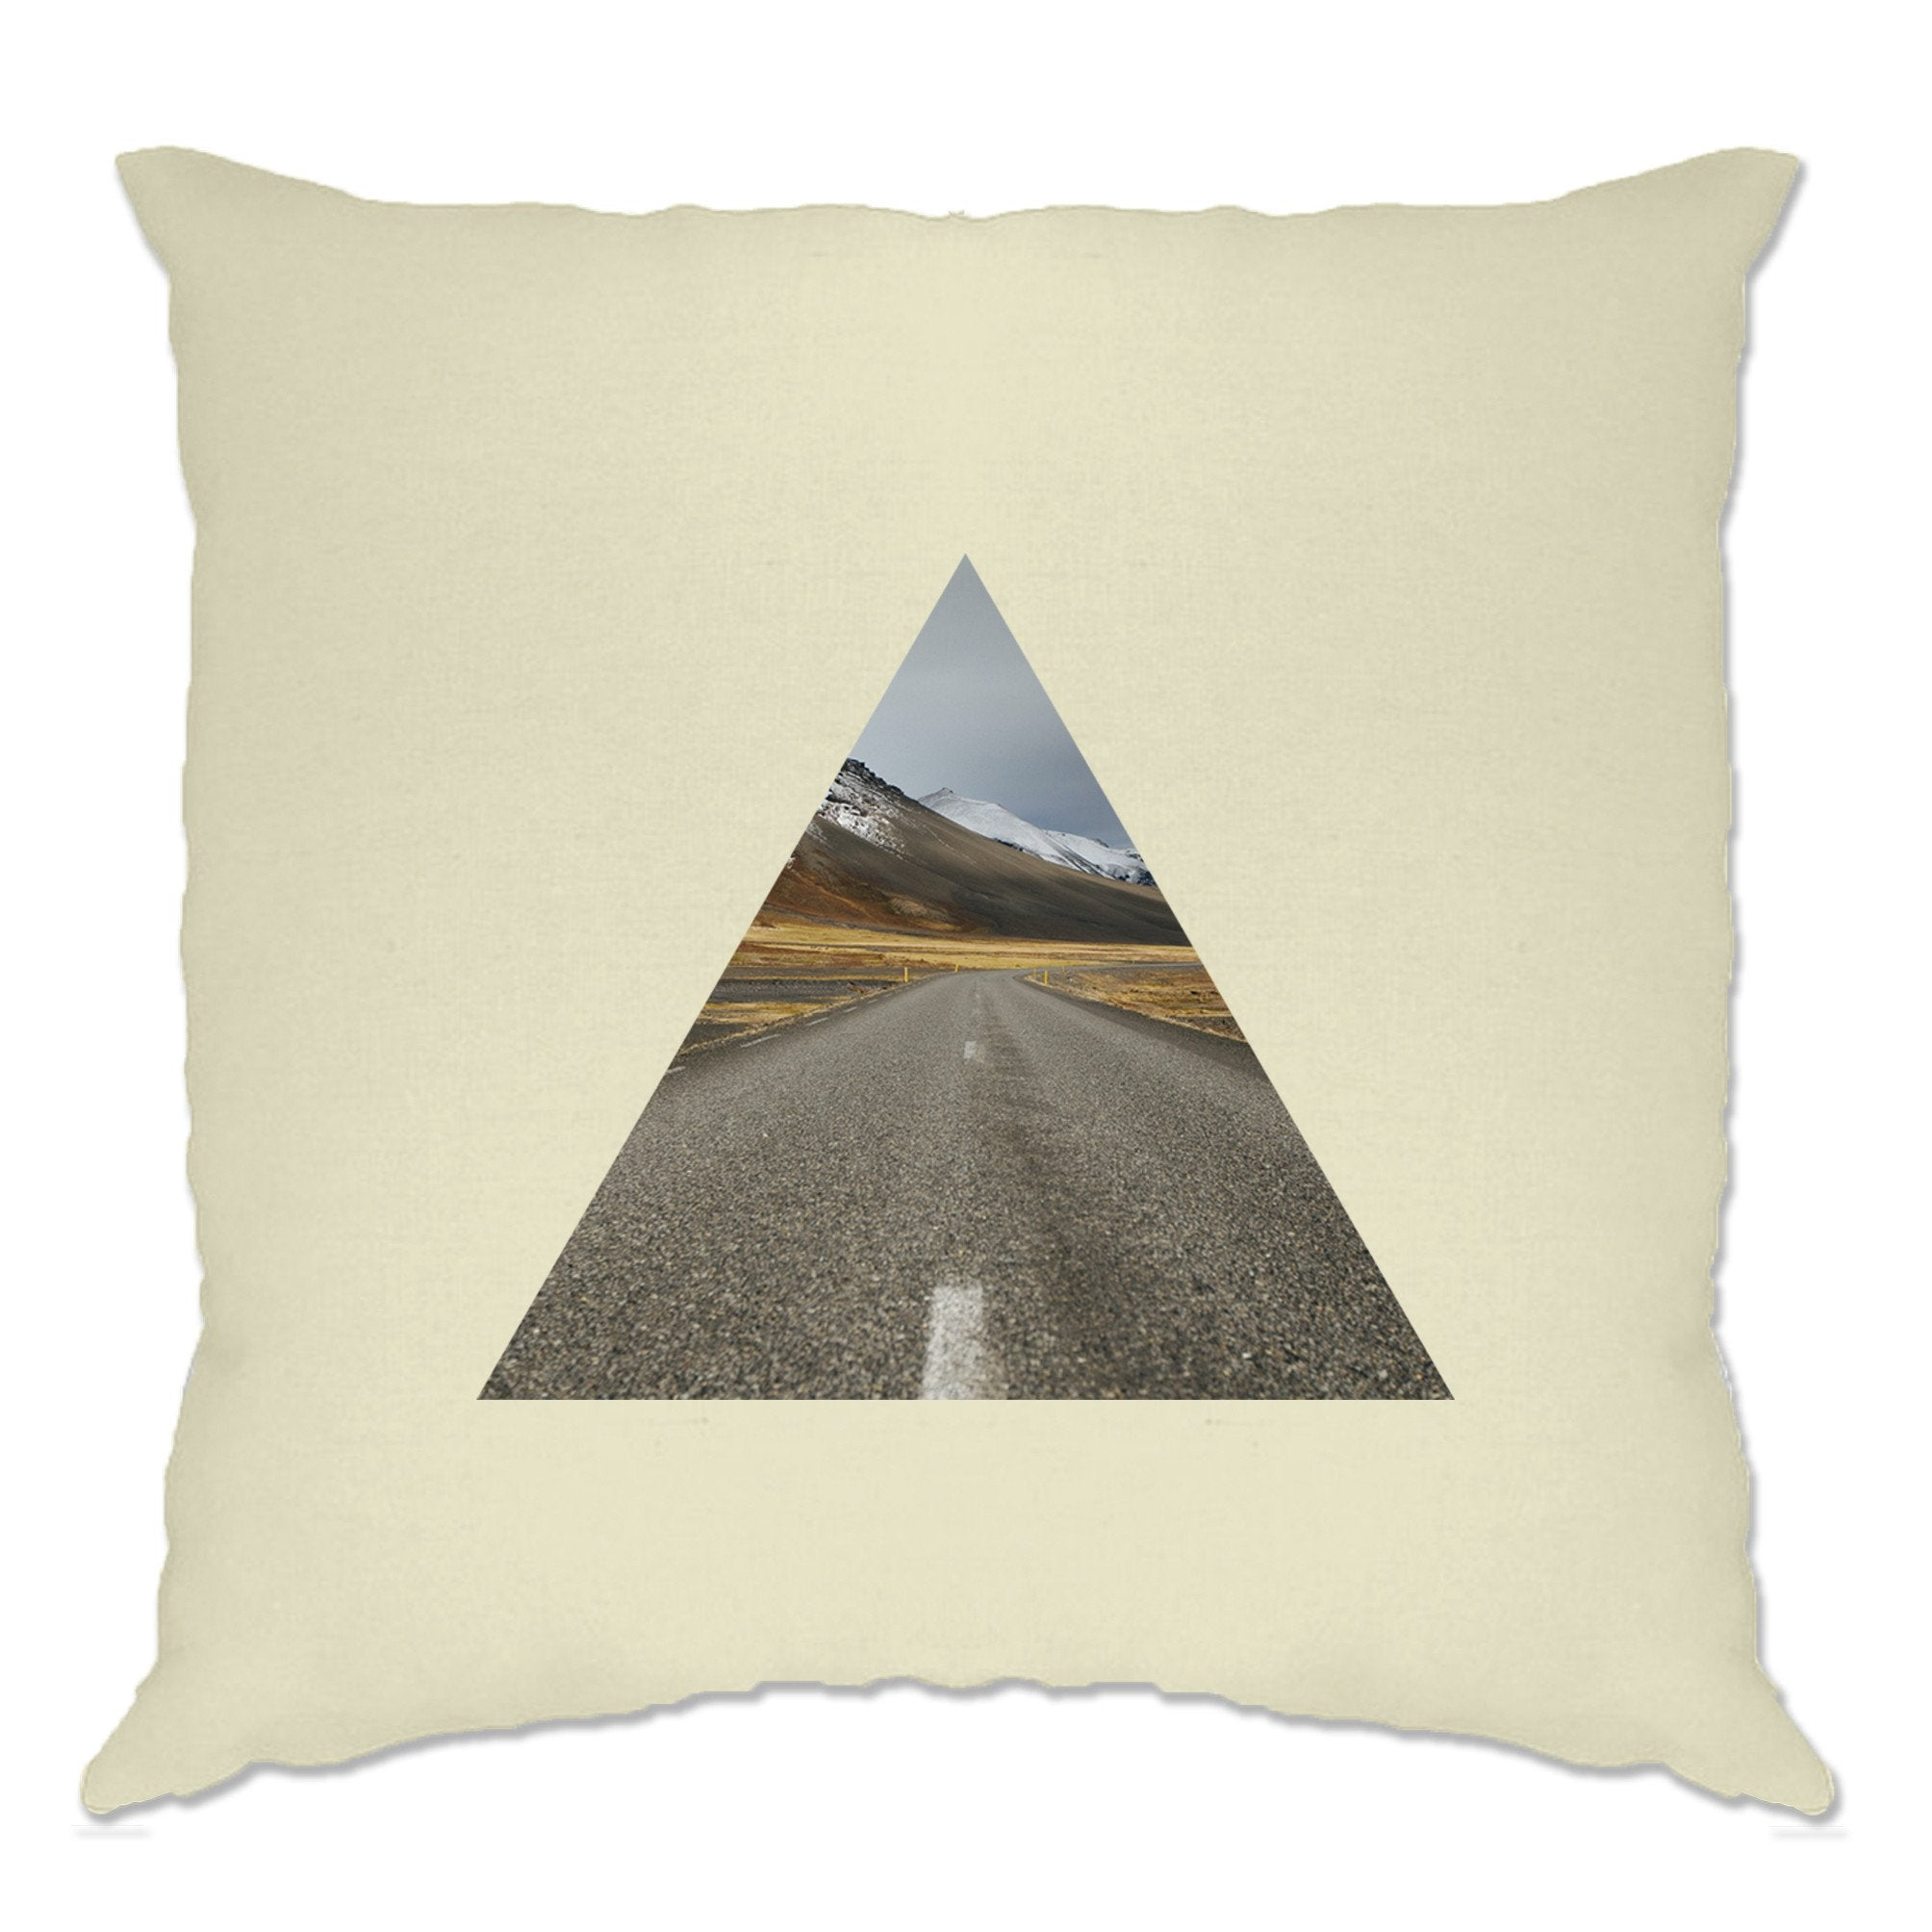 Photographic Art Cushion Cover Geometric Triangle Road